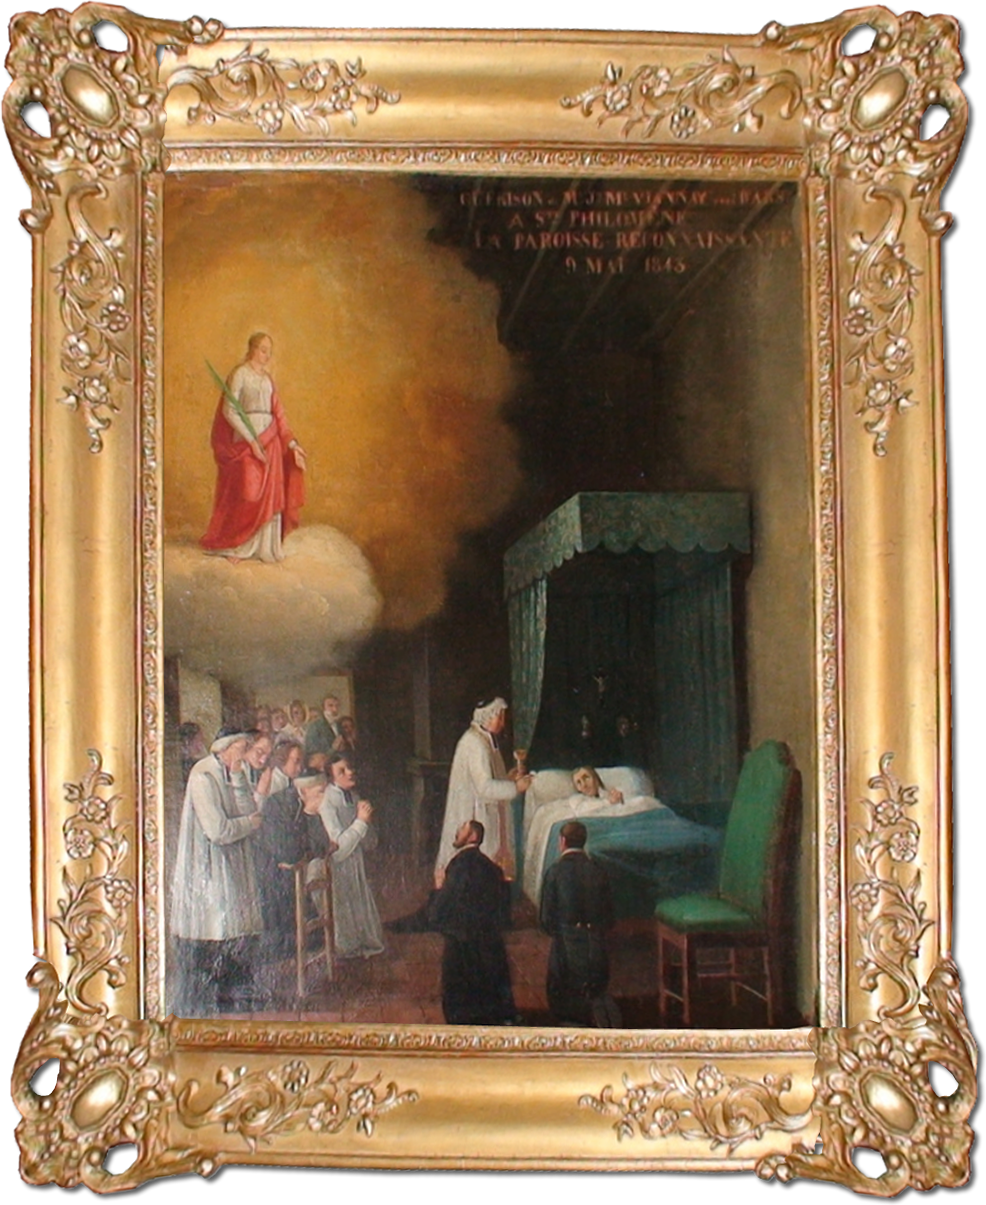 The Painting that depicts Saint Philomena appearing to Saint John Vianney.  The painting is housed in the Shrine of Ars, France.